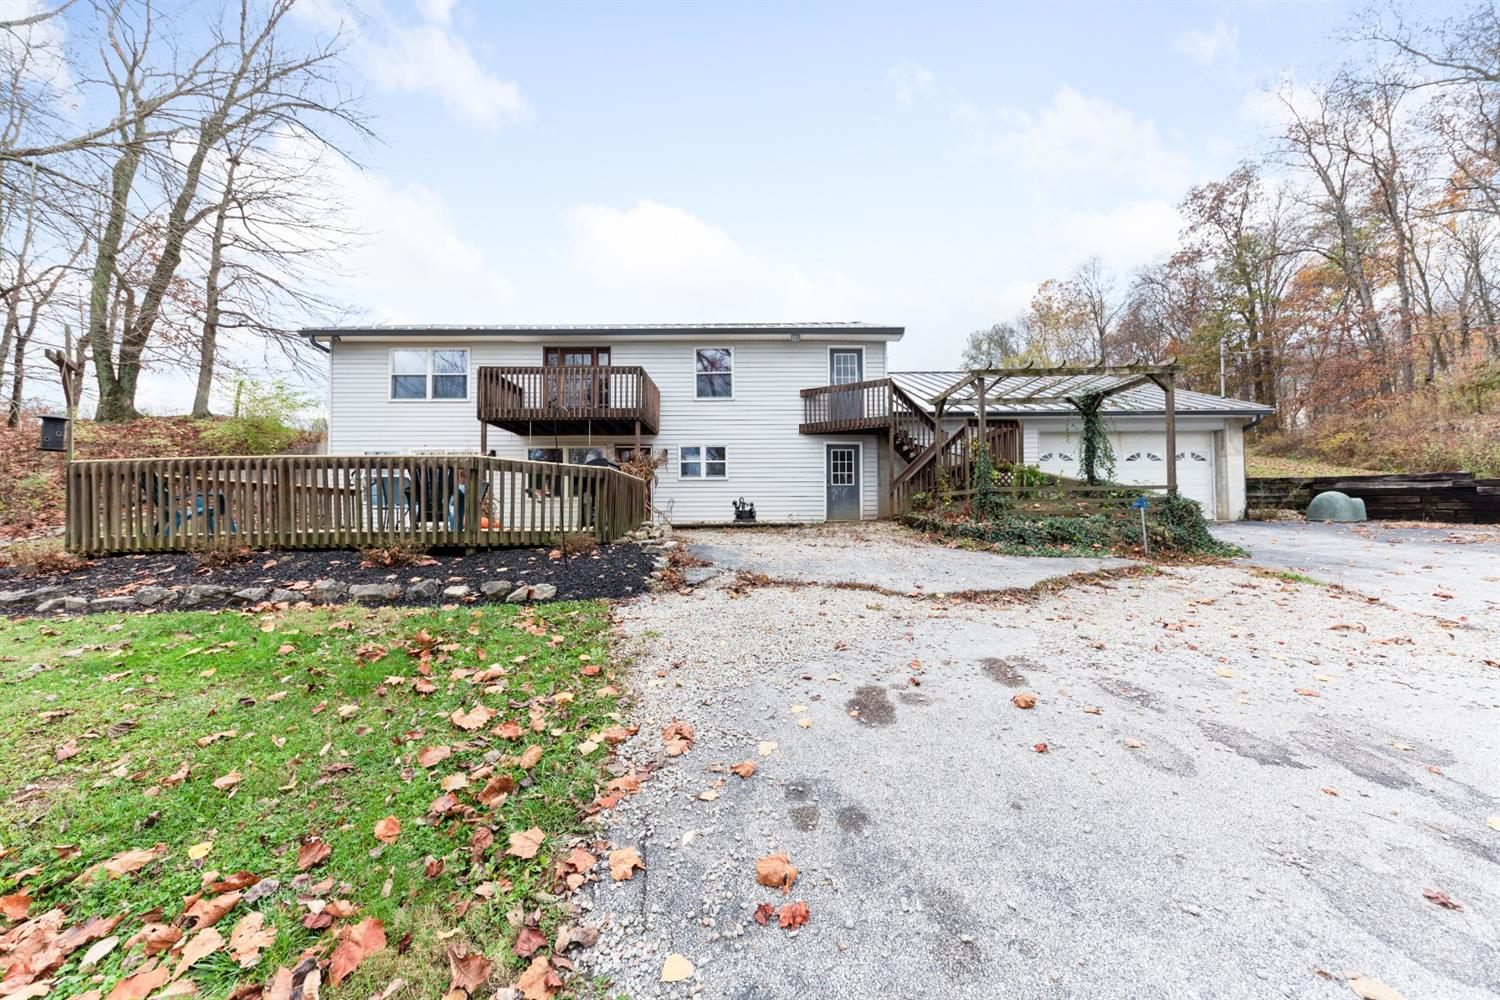 Photo 2 for 7563 Hockman Rd Jefferson Twp, OH 45168